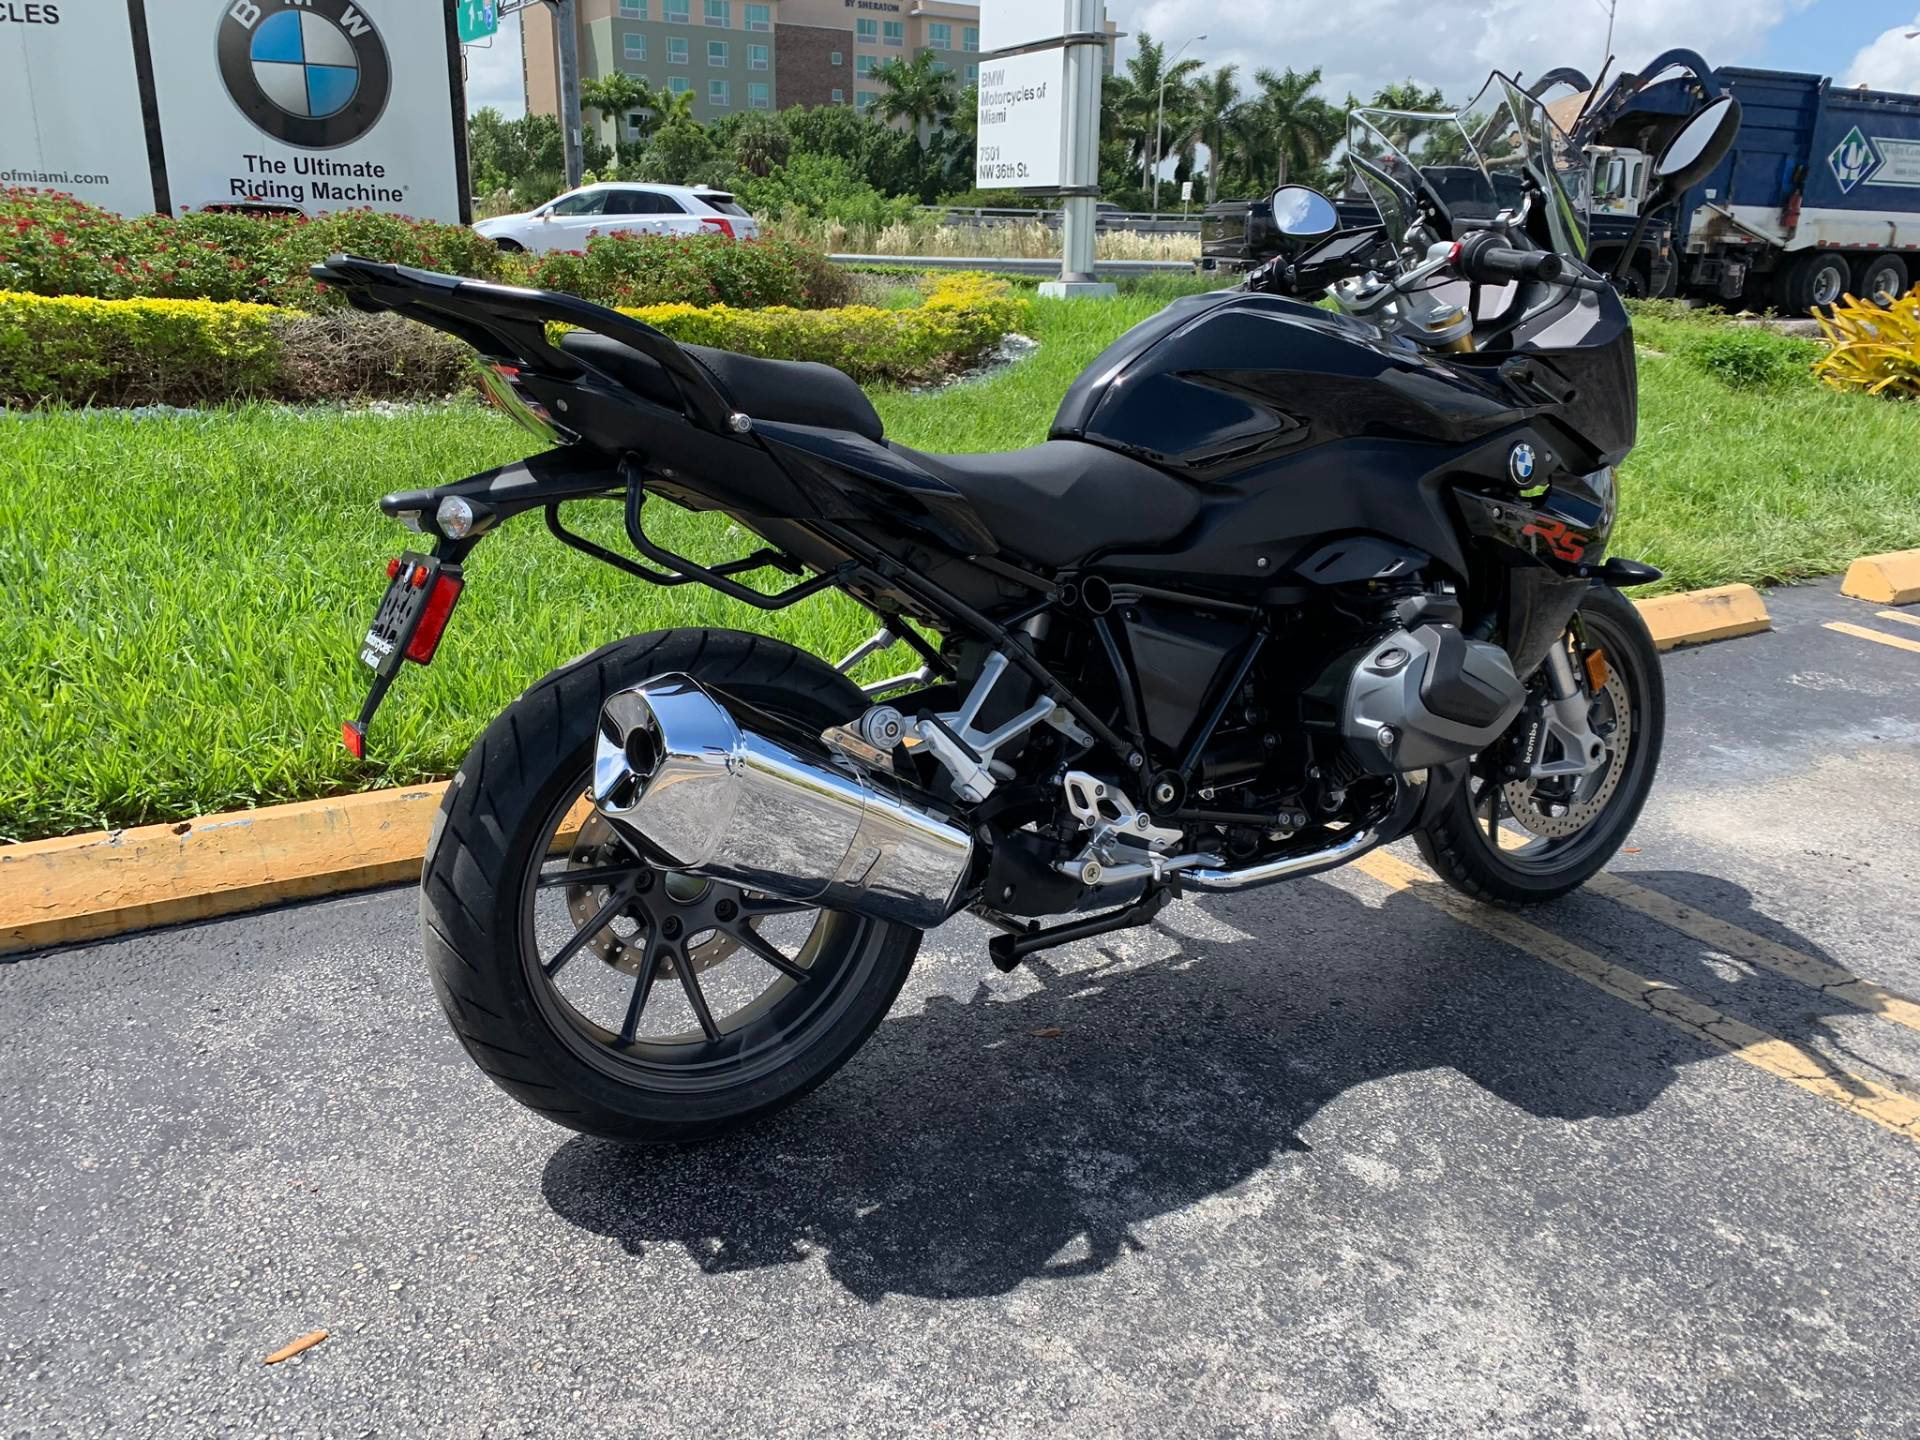 New 2019 BMW R 1250 RS for sale, BMW for sale R 1250RS, BMW Motorcycle R1250RS, new BMW 1250RS, R1250RS, BMW. BMW Motorcycles of Miami, Motorcycles of Miami, Motorcycles Miami, New Motorcycles, Used Motorcycles, pre-owned. #BMWMotorcyclesOfMiami #MotorcyclesOfMiami. - Photo 9